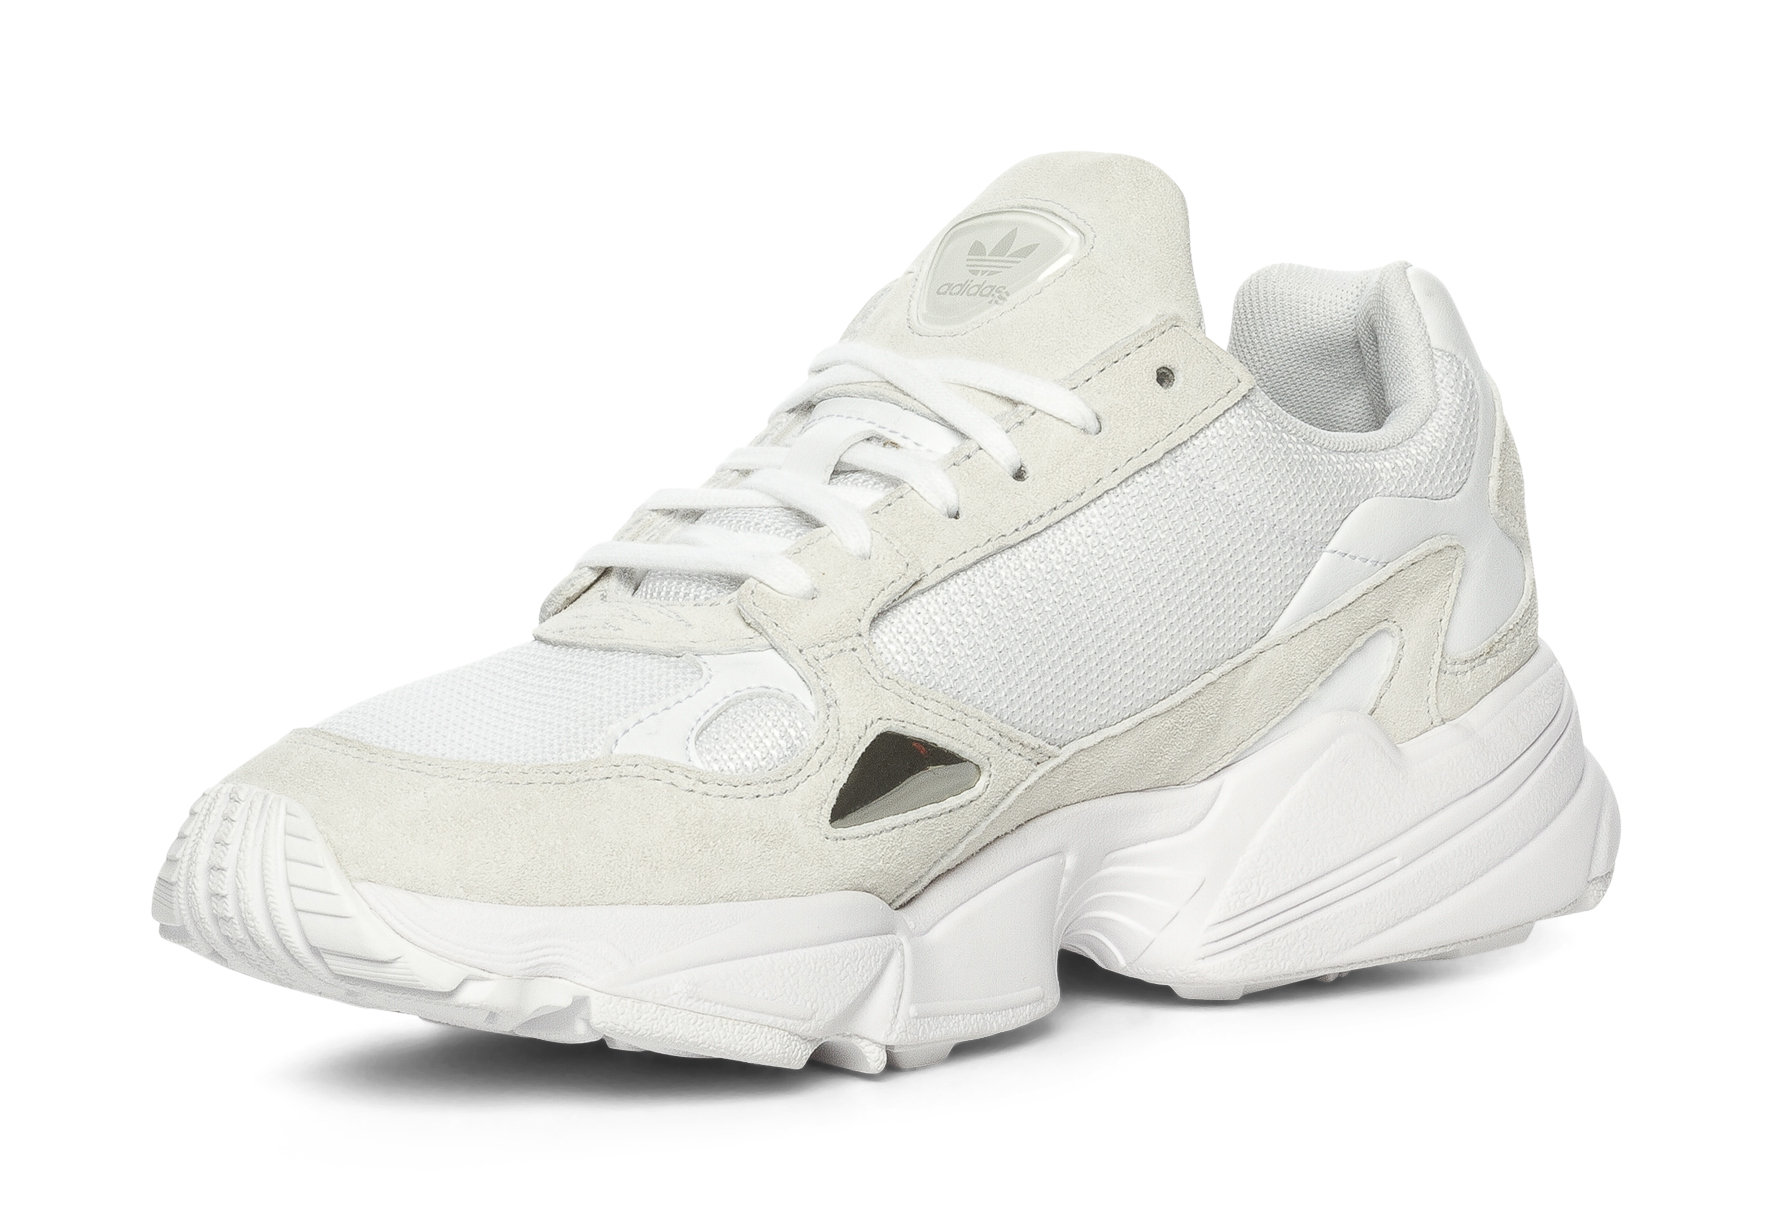 huge selection of f8a9a a5f43 ADIDAS Falcon W - Valkoinen 317980 feetfirst.fi